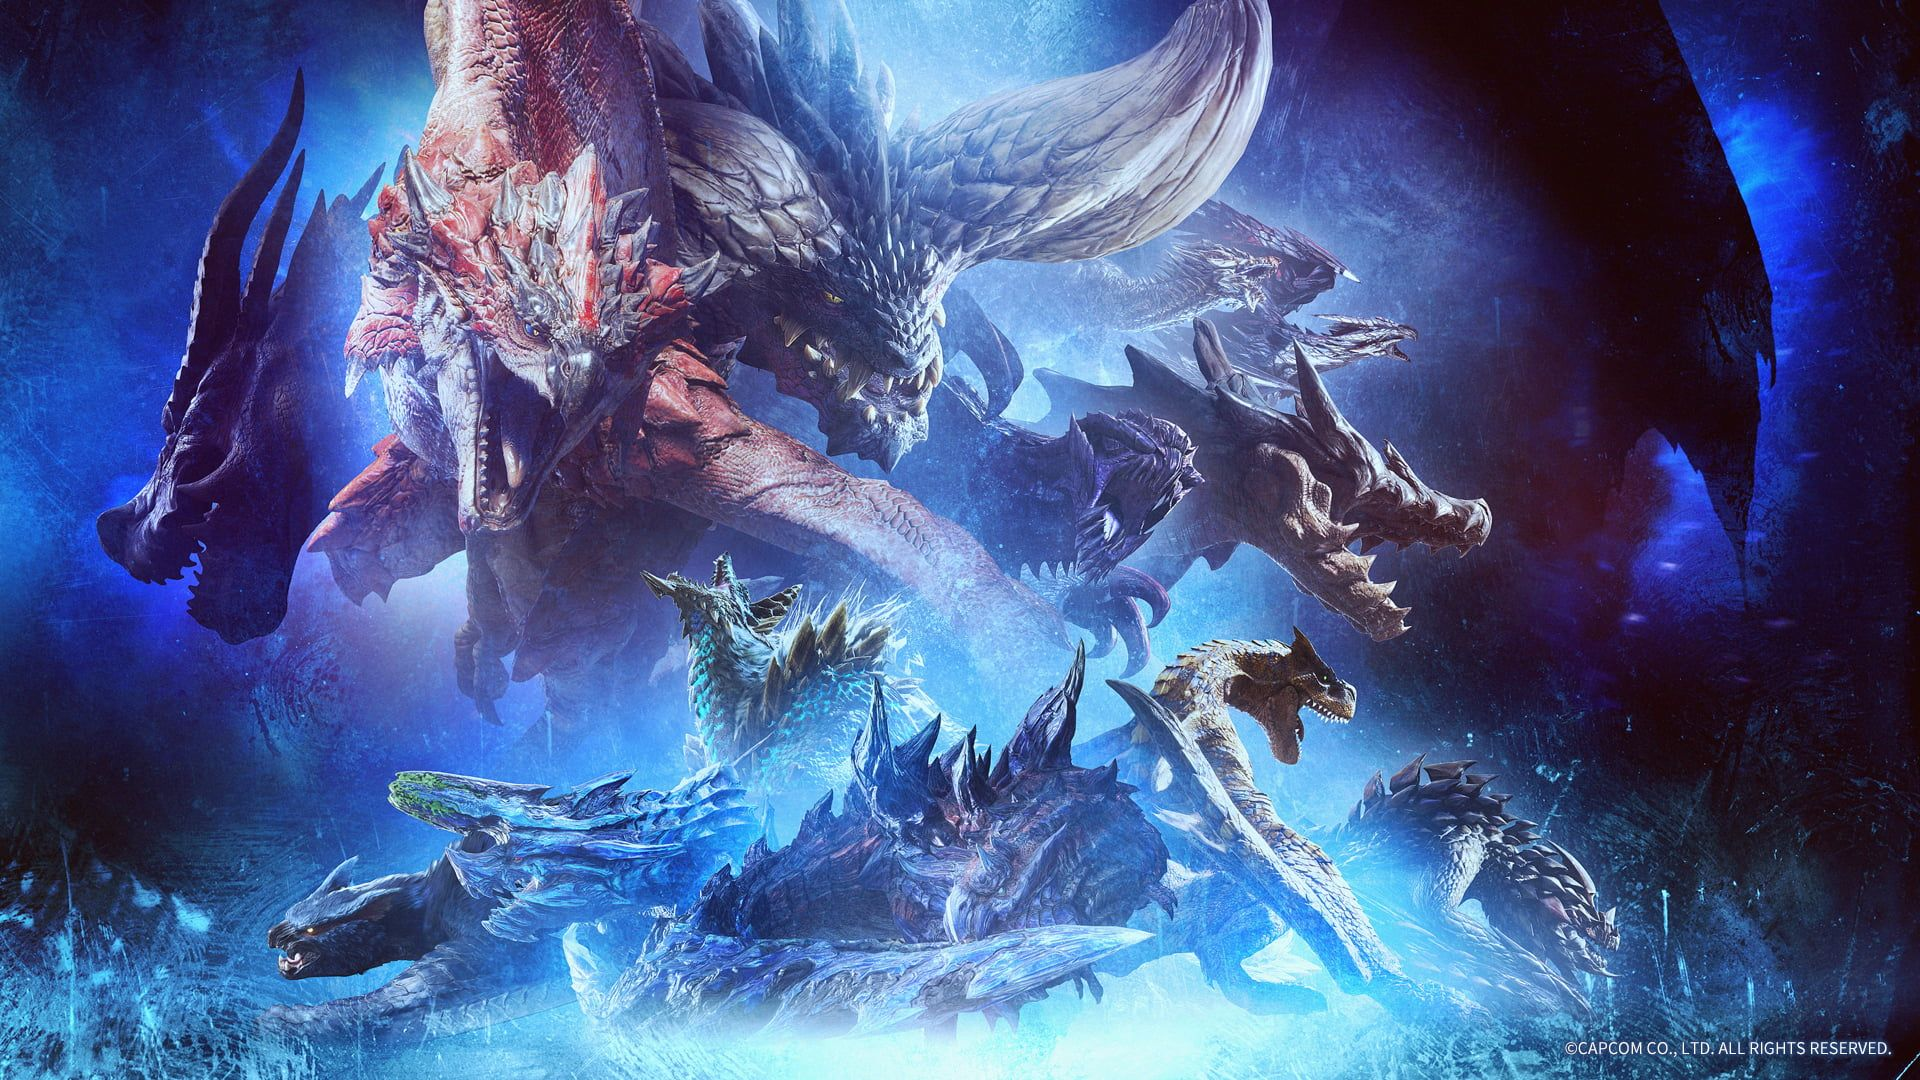 Video Games Digital Art Monster Hunter World Dragon Creature Capcom 1080p Wallpaper H In 2020 Monster Hunter World Wallpaper Monster Hunter World Monster Hunter